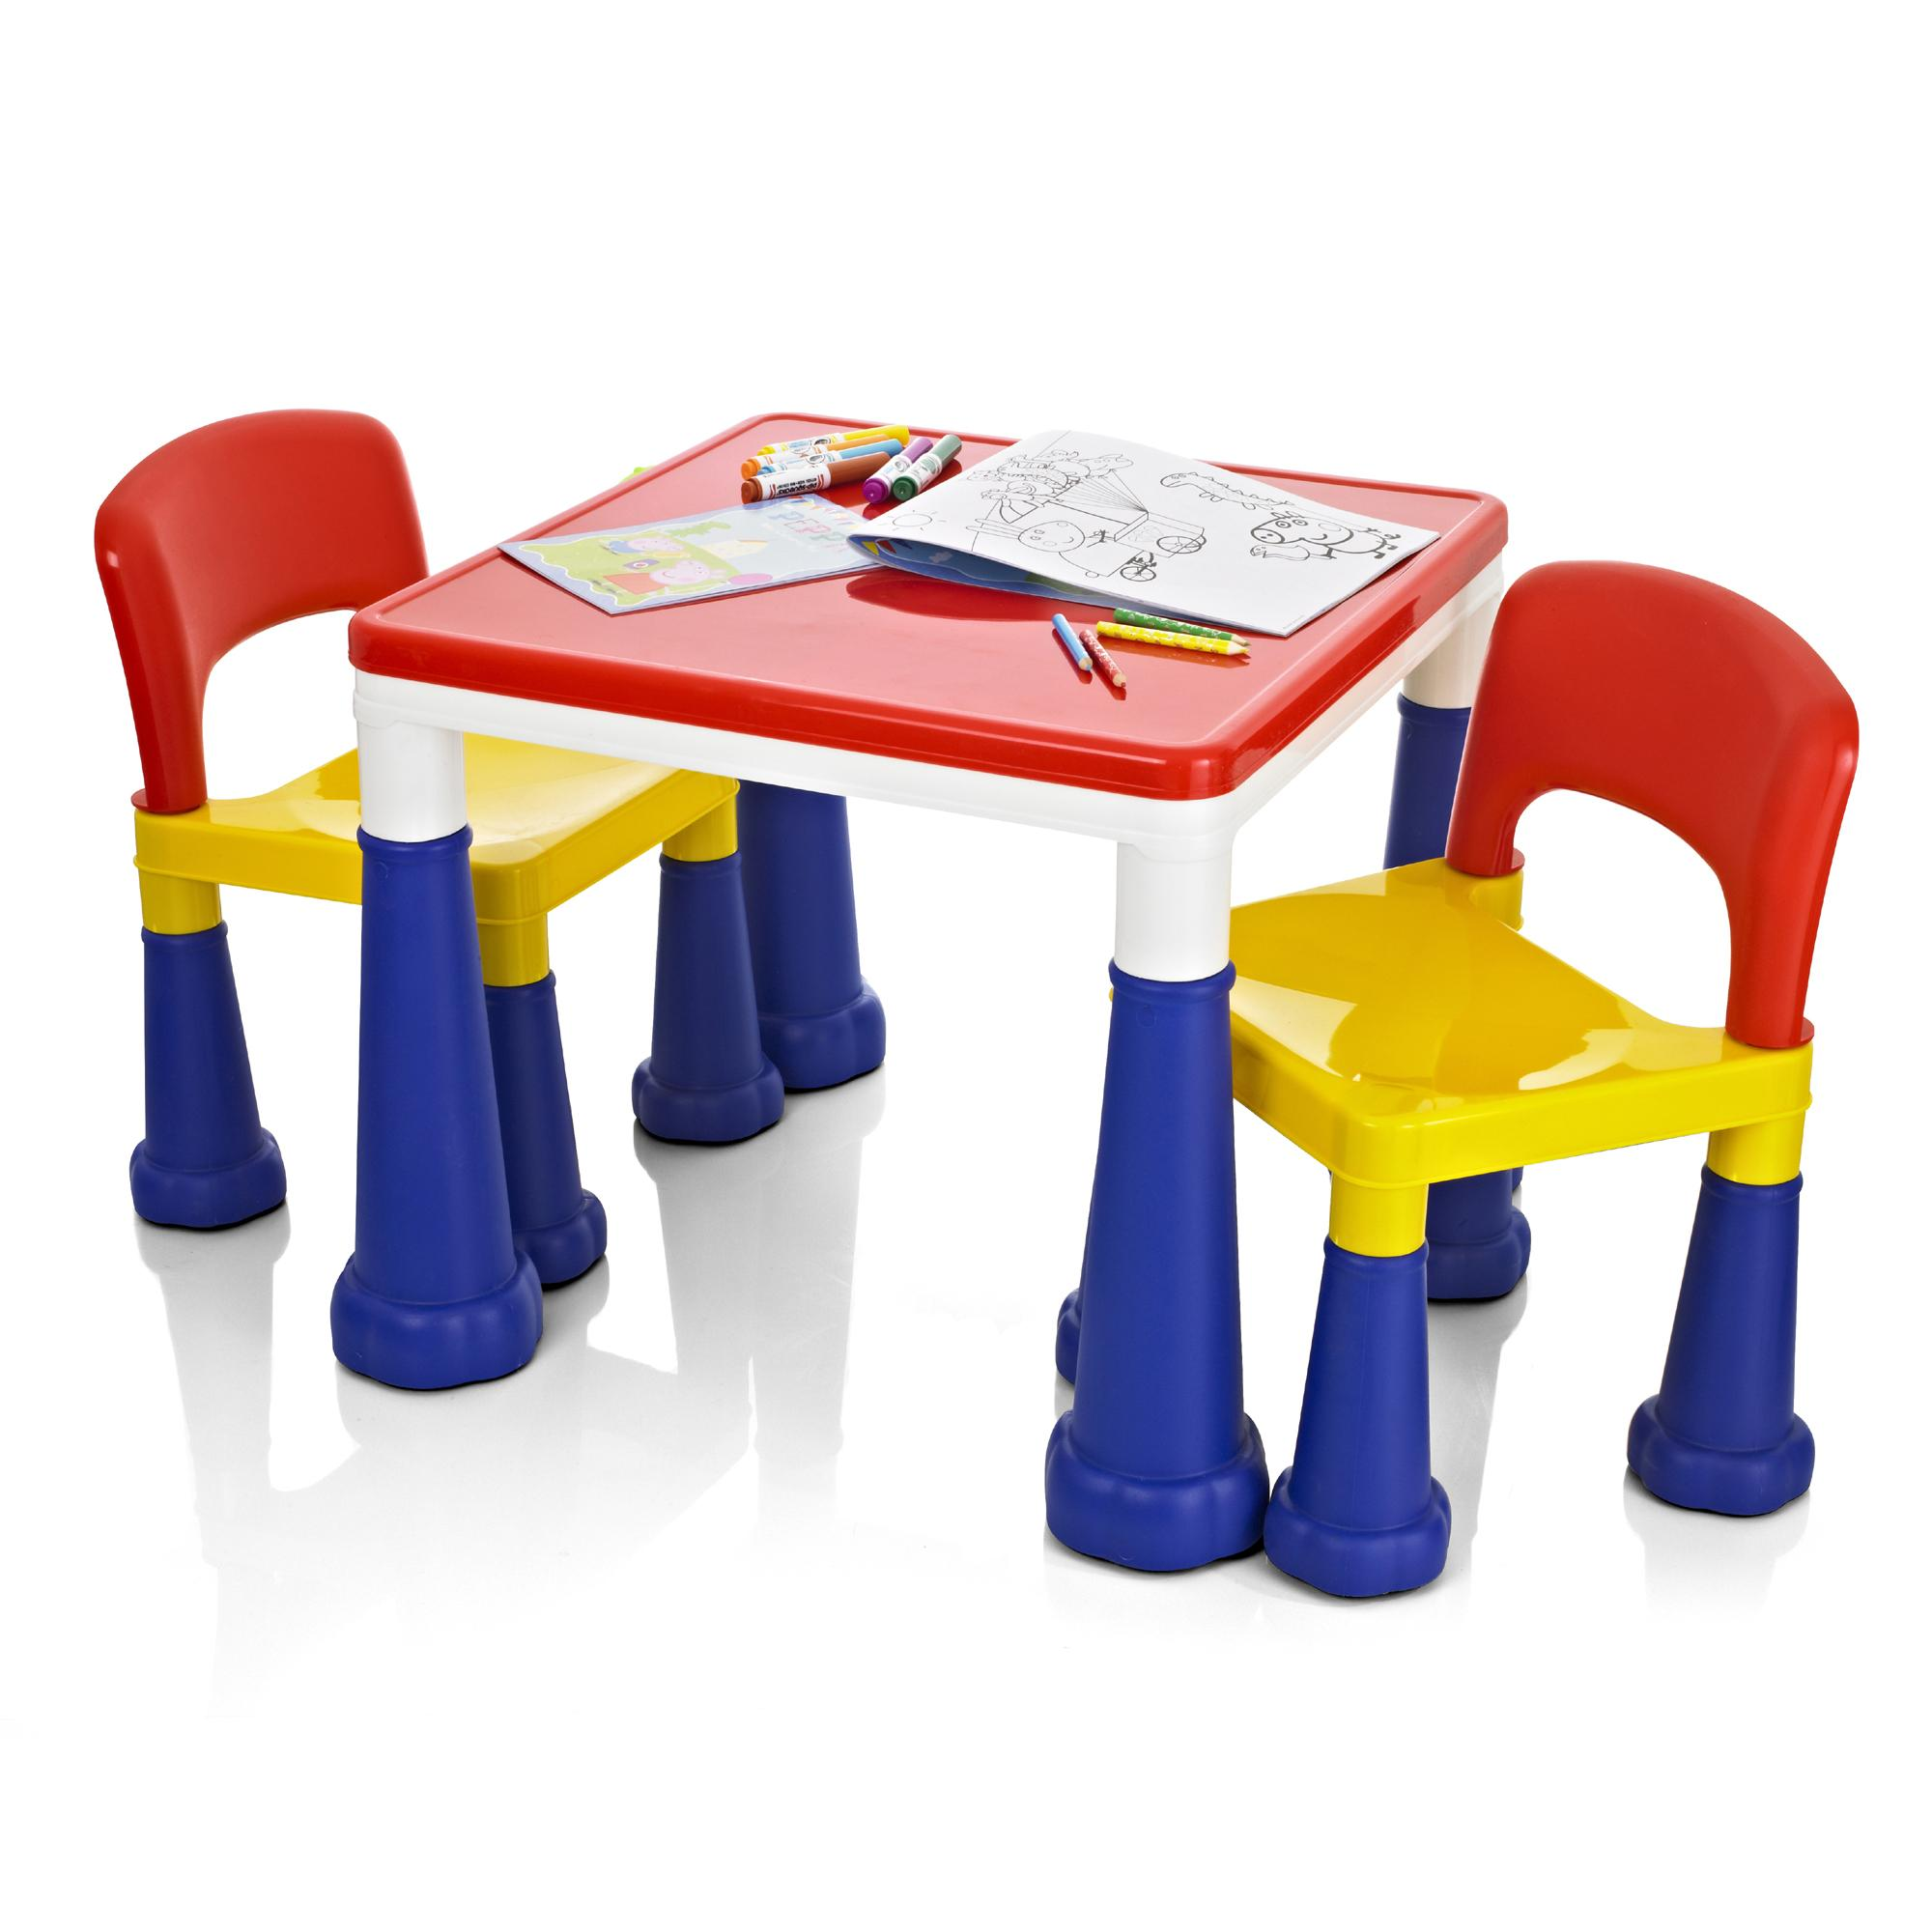 kids lego duplo building activity play colouring table chairs set